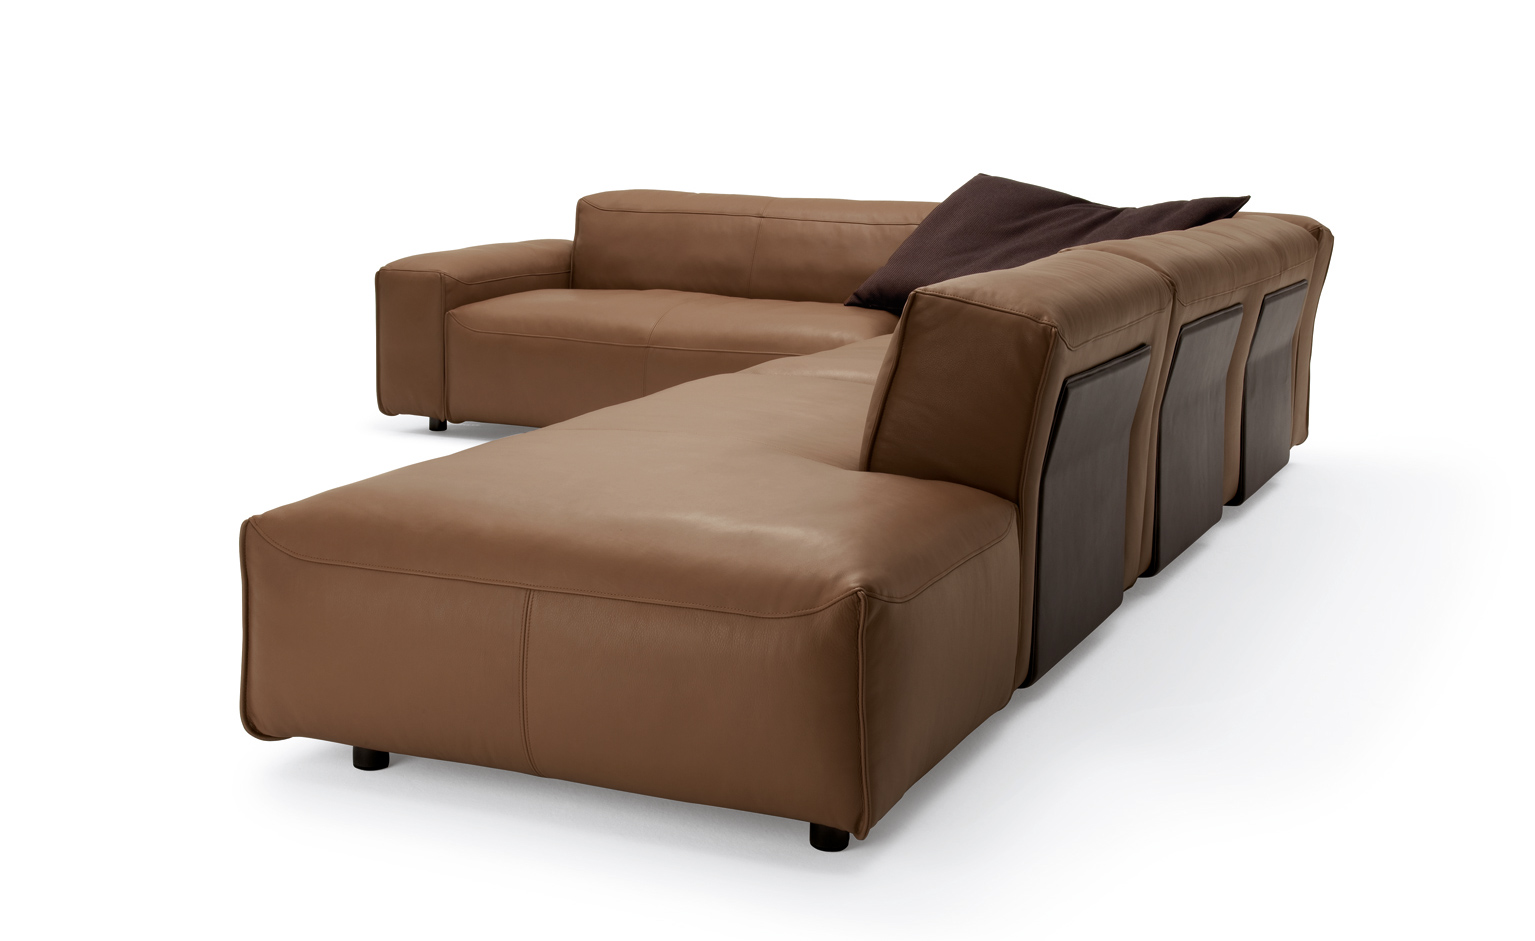 Rolf benz mio couch for Couch benz